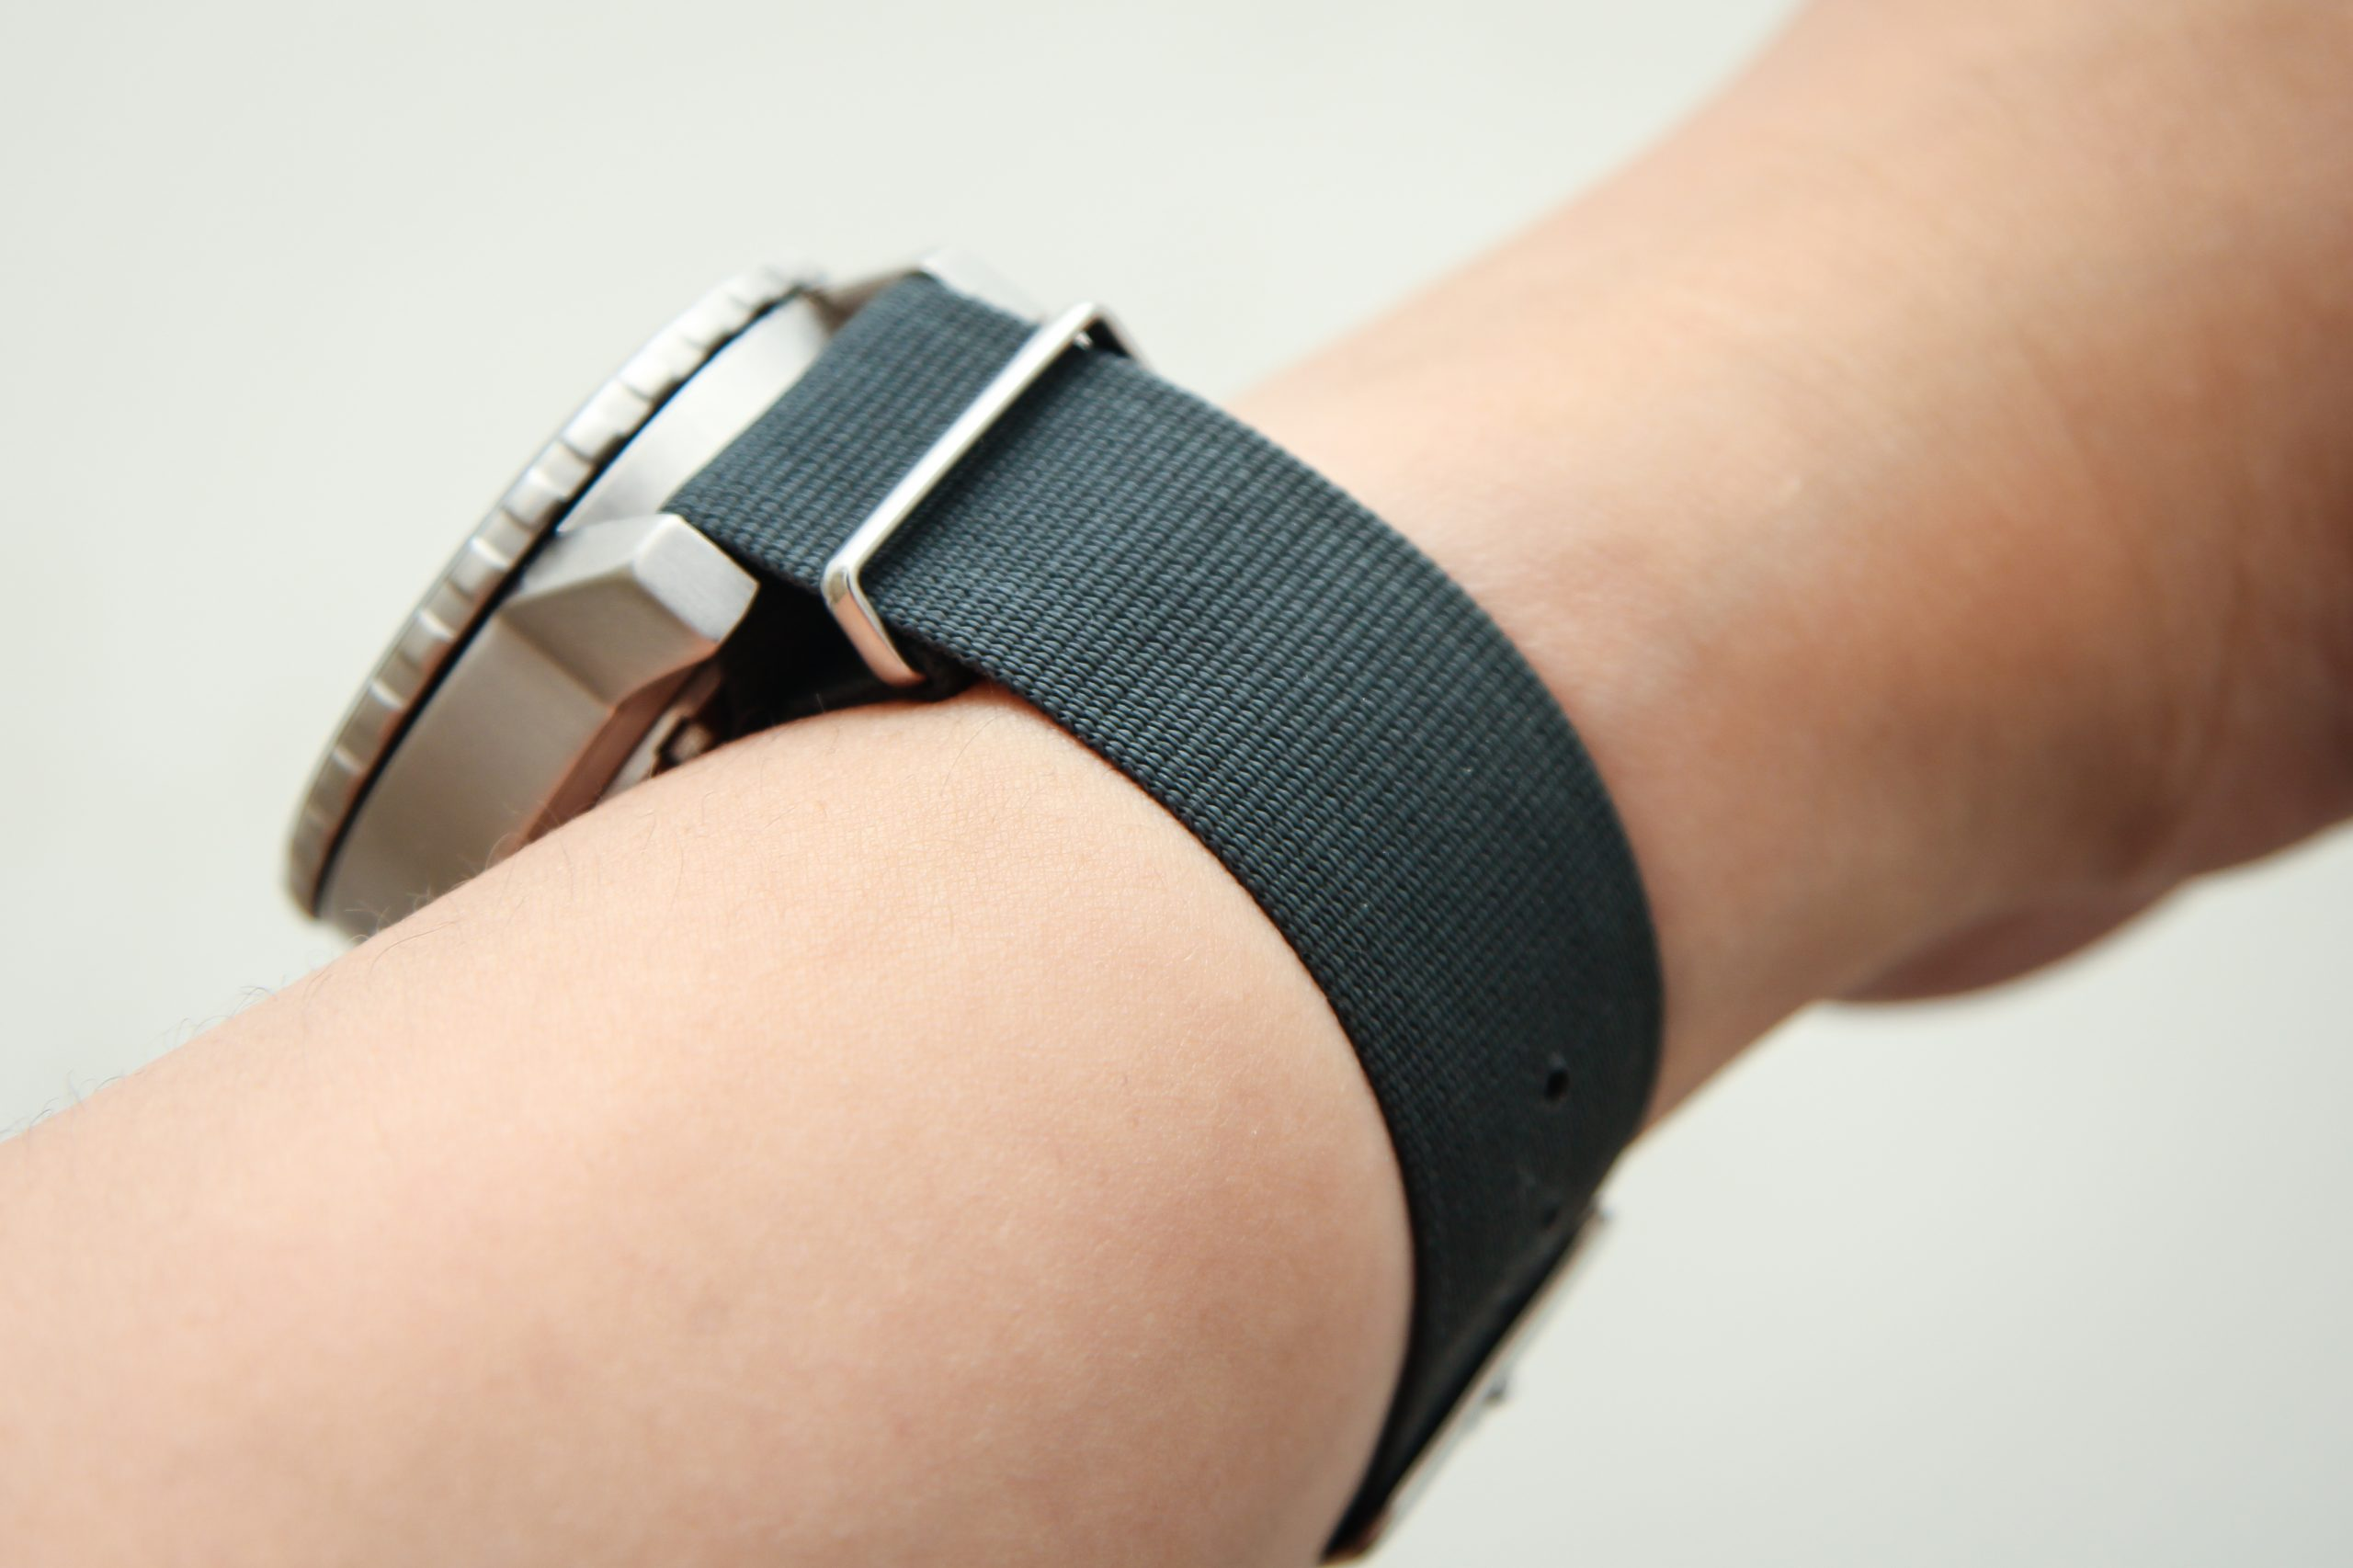 fabric watch strap on a person's wrist